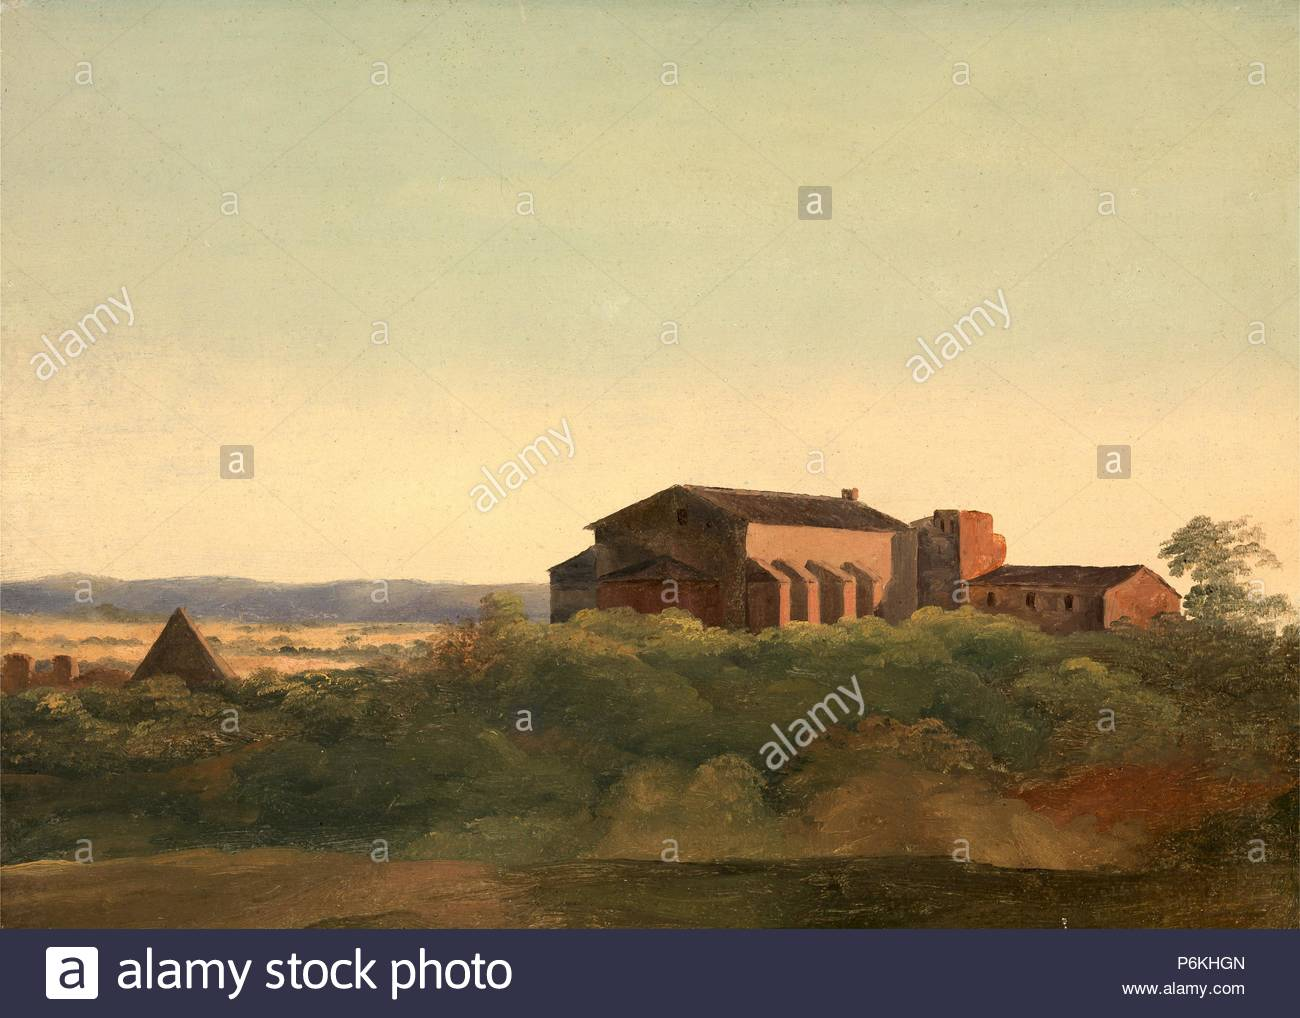 A View of the Church of S. Sabina and the Pyramid of Cestius, Rome, Charles Lock Eastlake, 1793-1865, British. Stock Photo